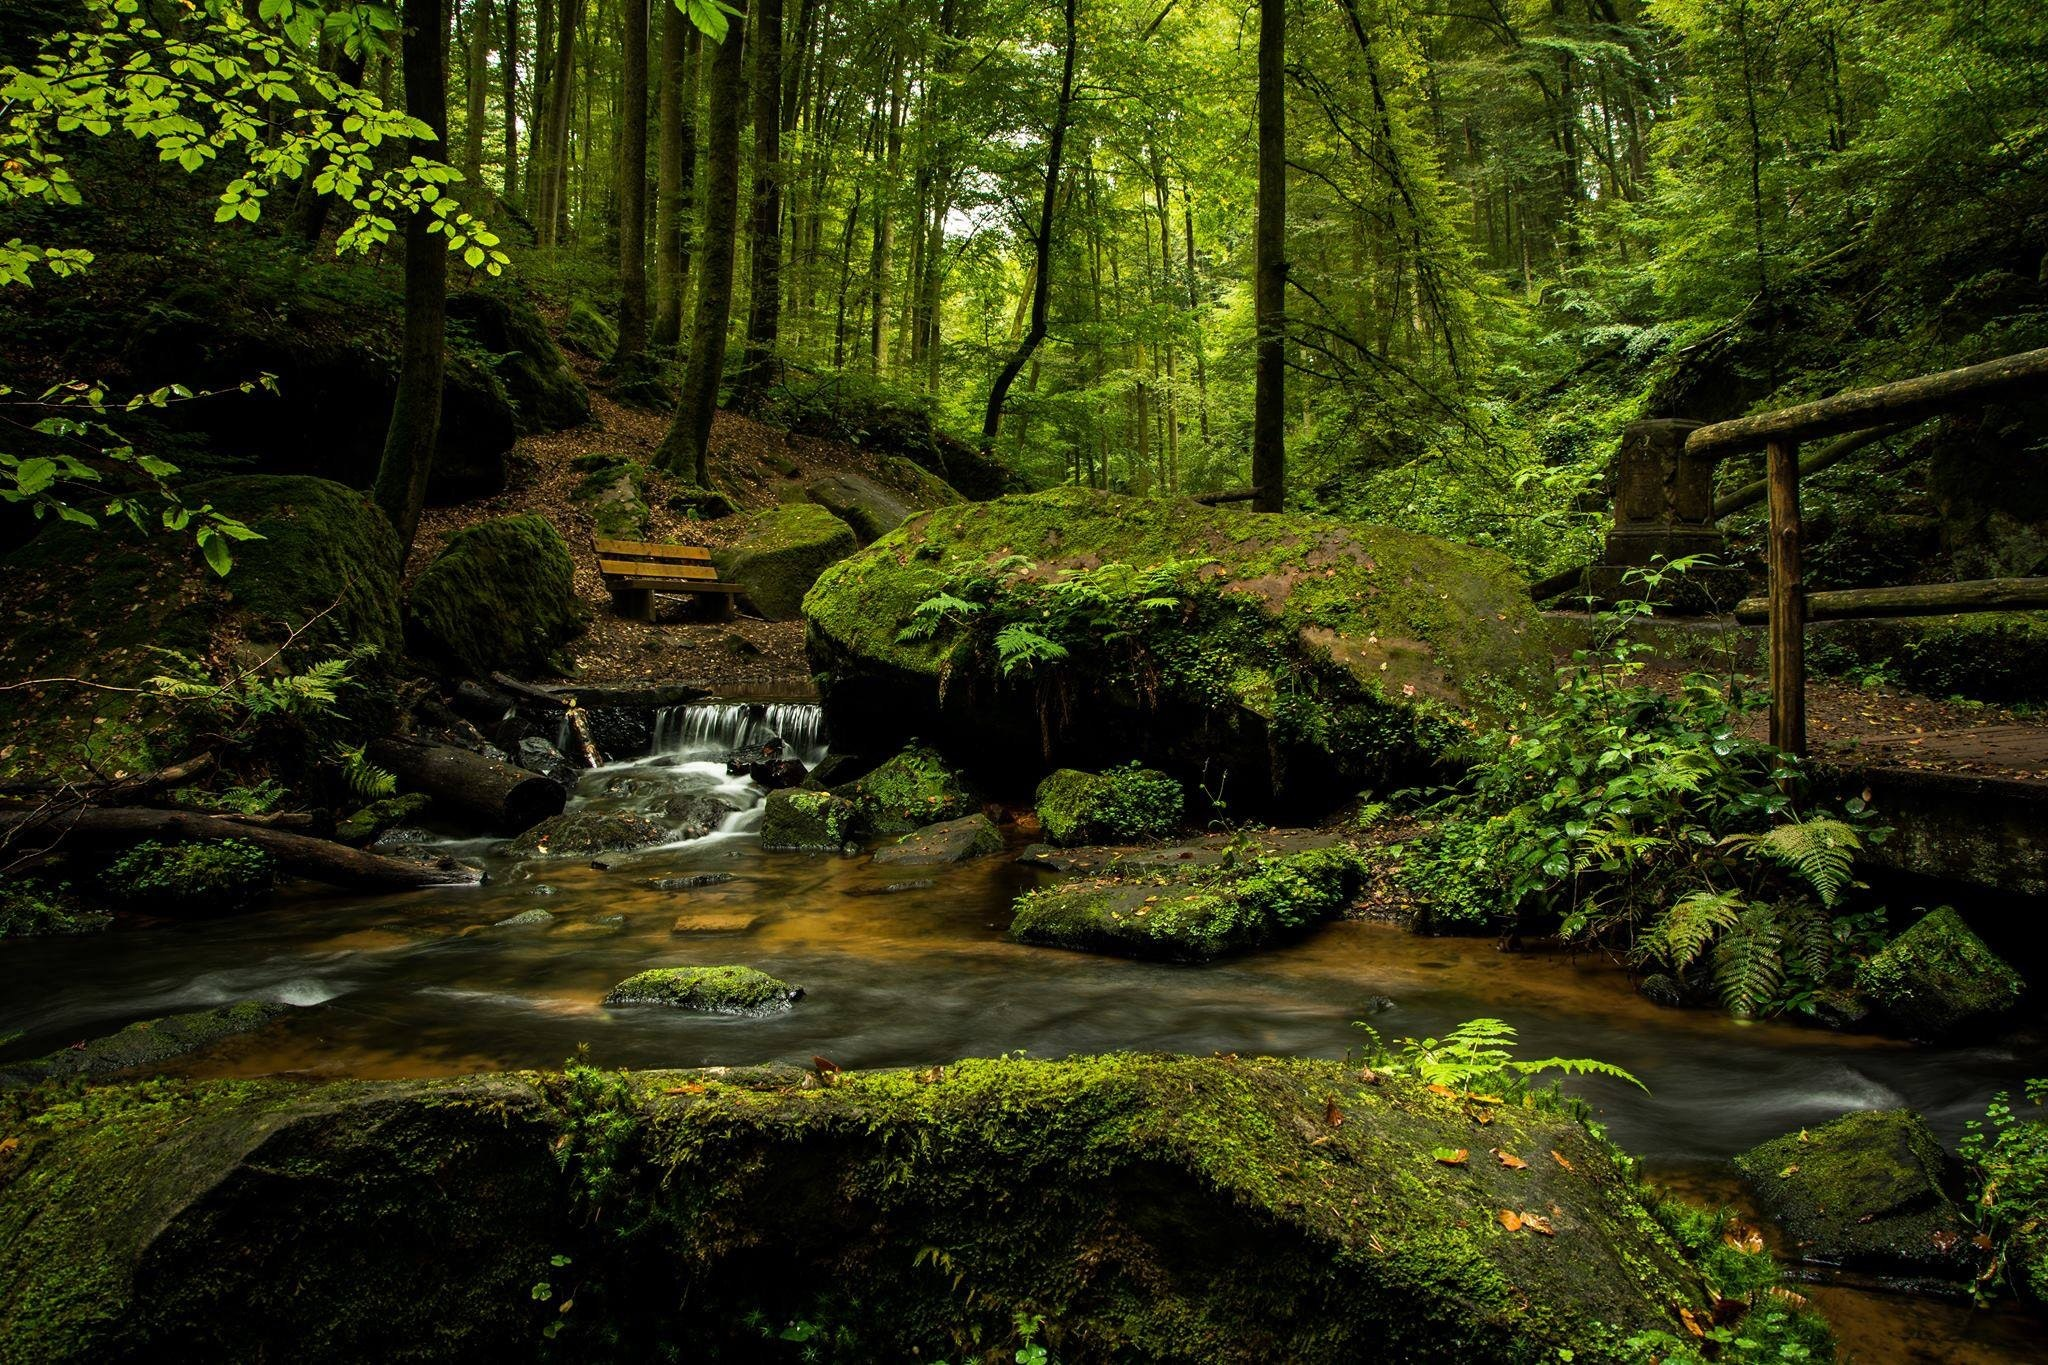 Let the essence of the forest wash over you …